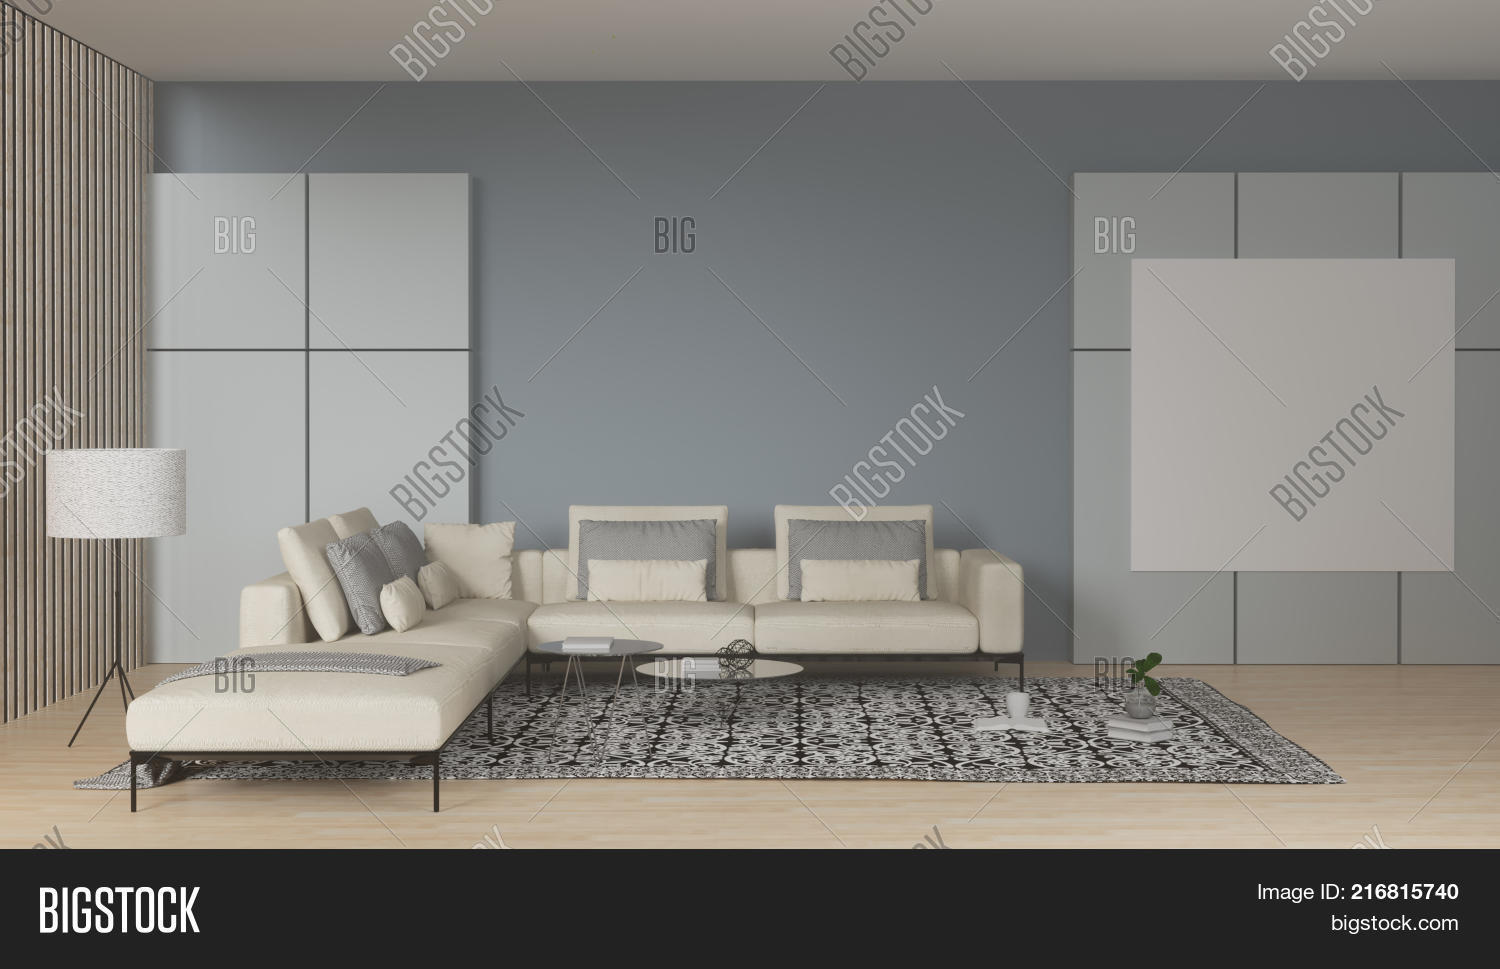 Astounding Furniture White Sofa Image Photo Free Trial Bigstock Unemploymentrelief Wooden Chair Designs For Living Room Unemploymentrelieforg